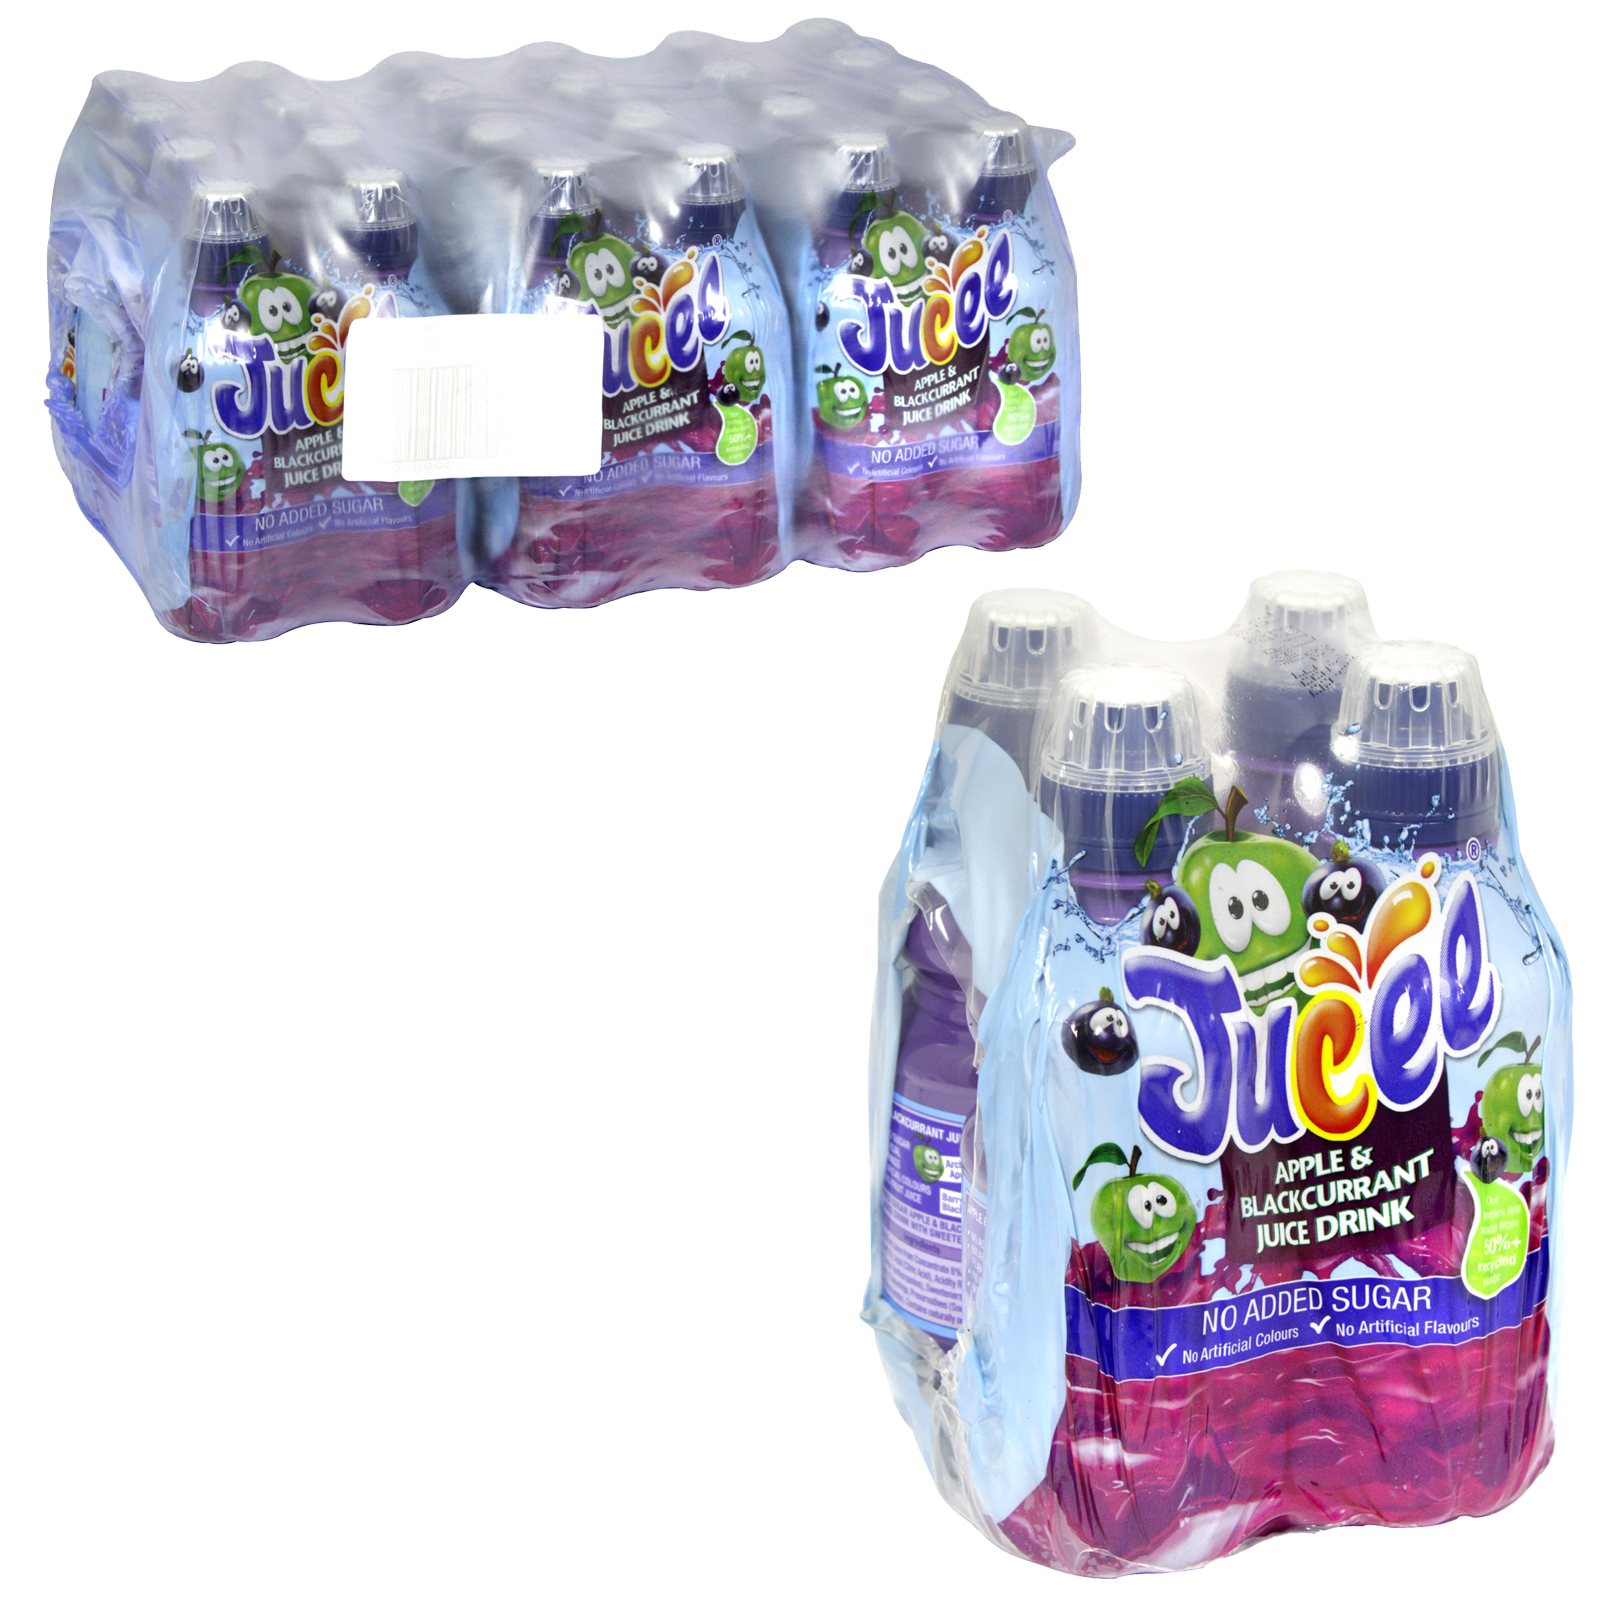 JUCEE APPLE & BLACKCURRANT NO ADDED SUGAR JUICE DRINK 4 PACK 250ML X6